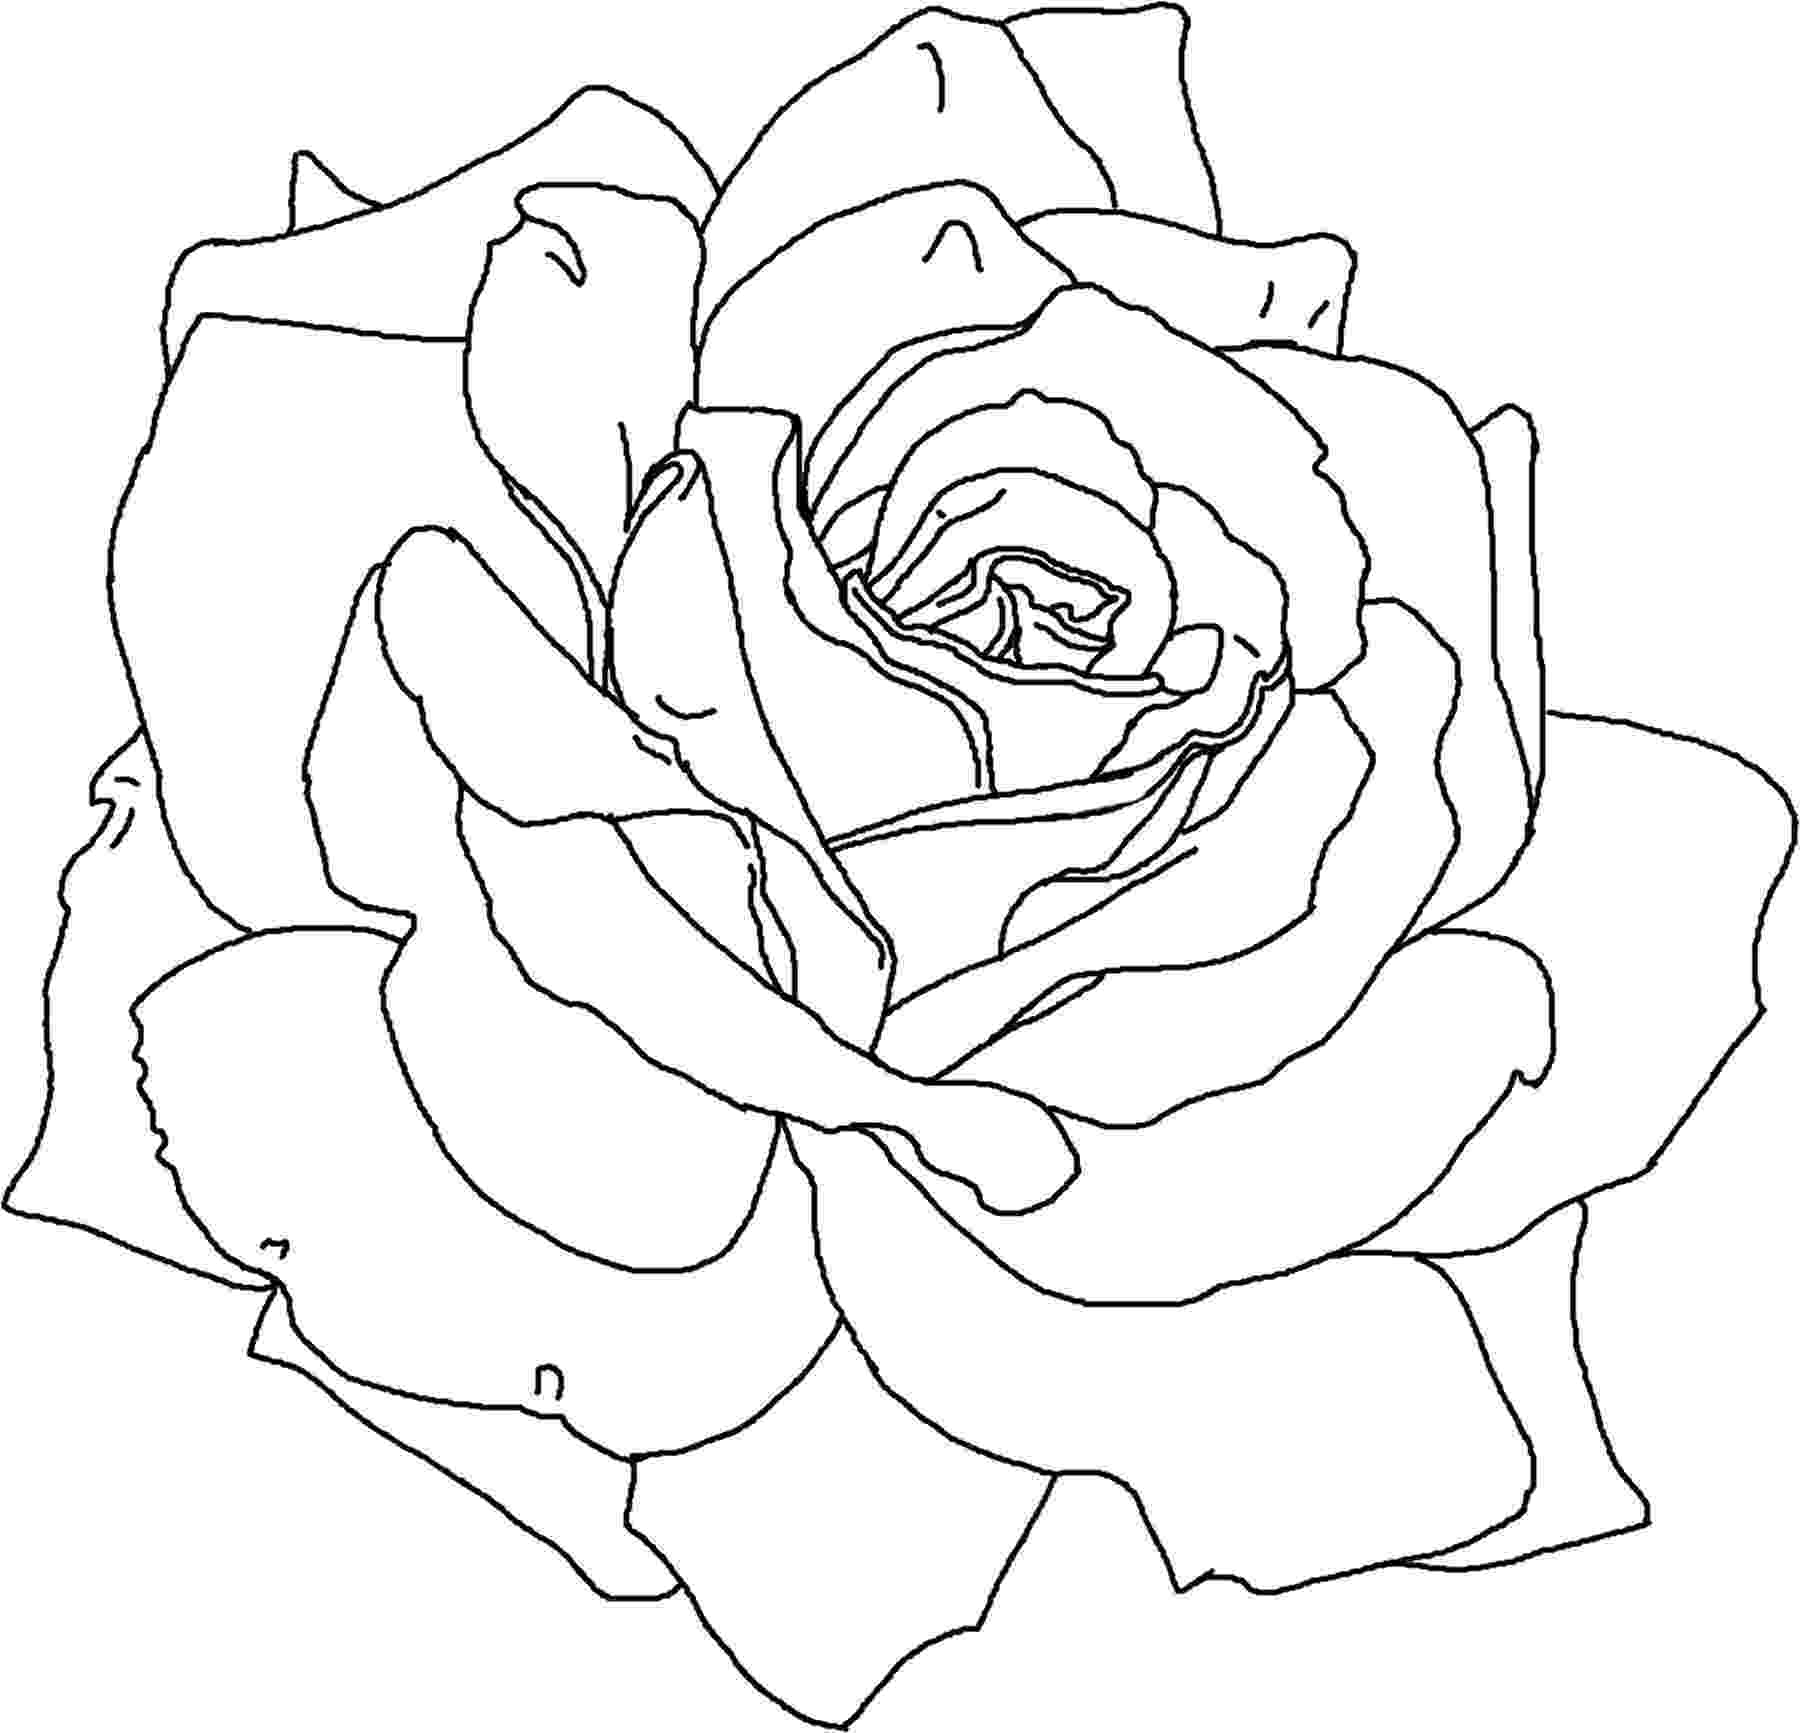 pictures of flowers to color free printables free encouragement flower coloring page printable fox printables color flowers pictures free of to